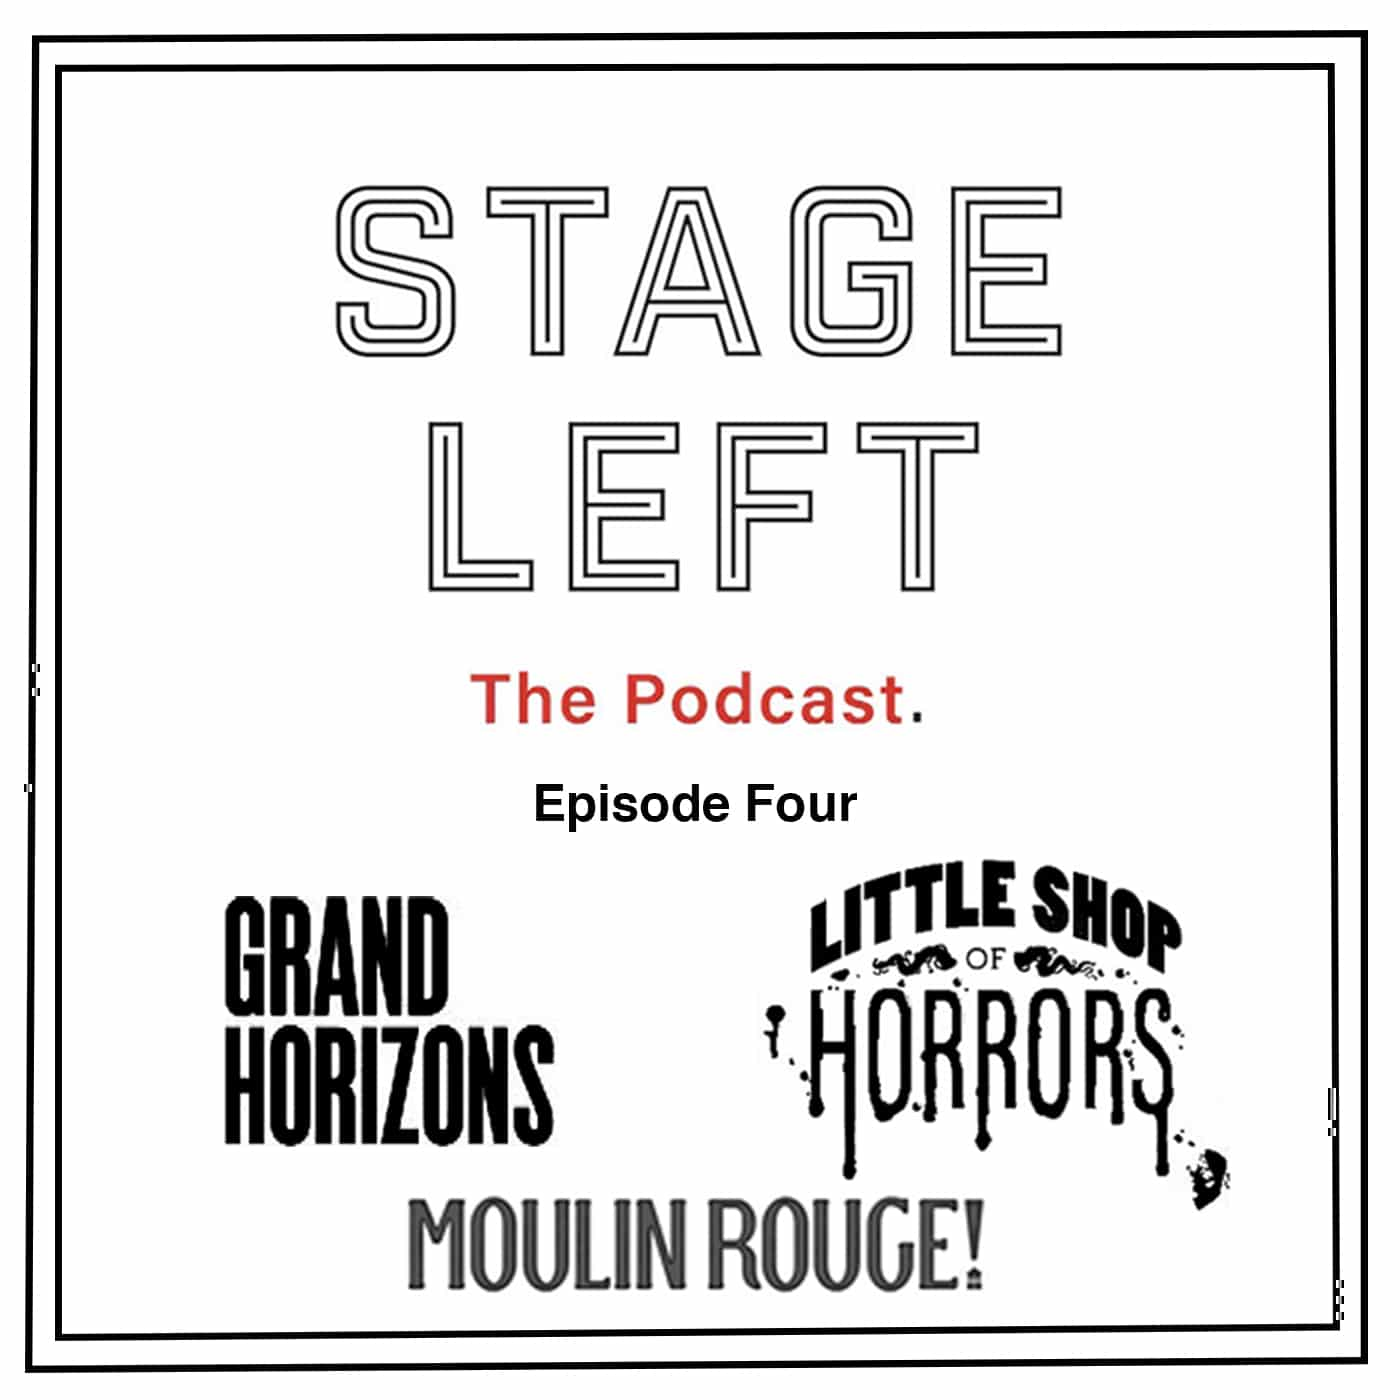 Stage Left Episode 4 Moulin Rouge, Little Shop of Horrors, Grand Horizons